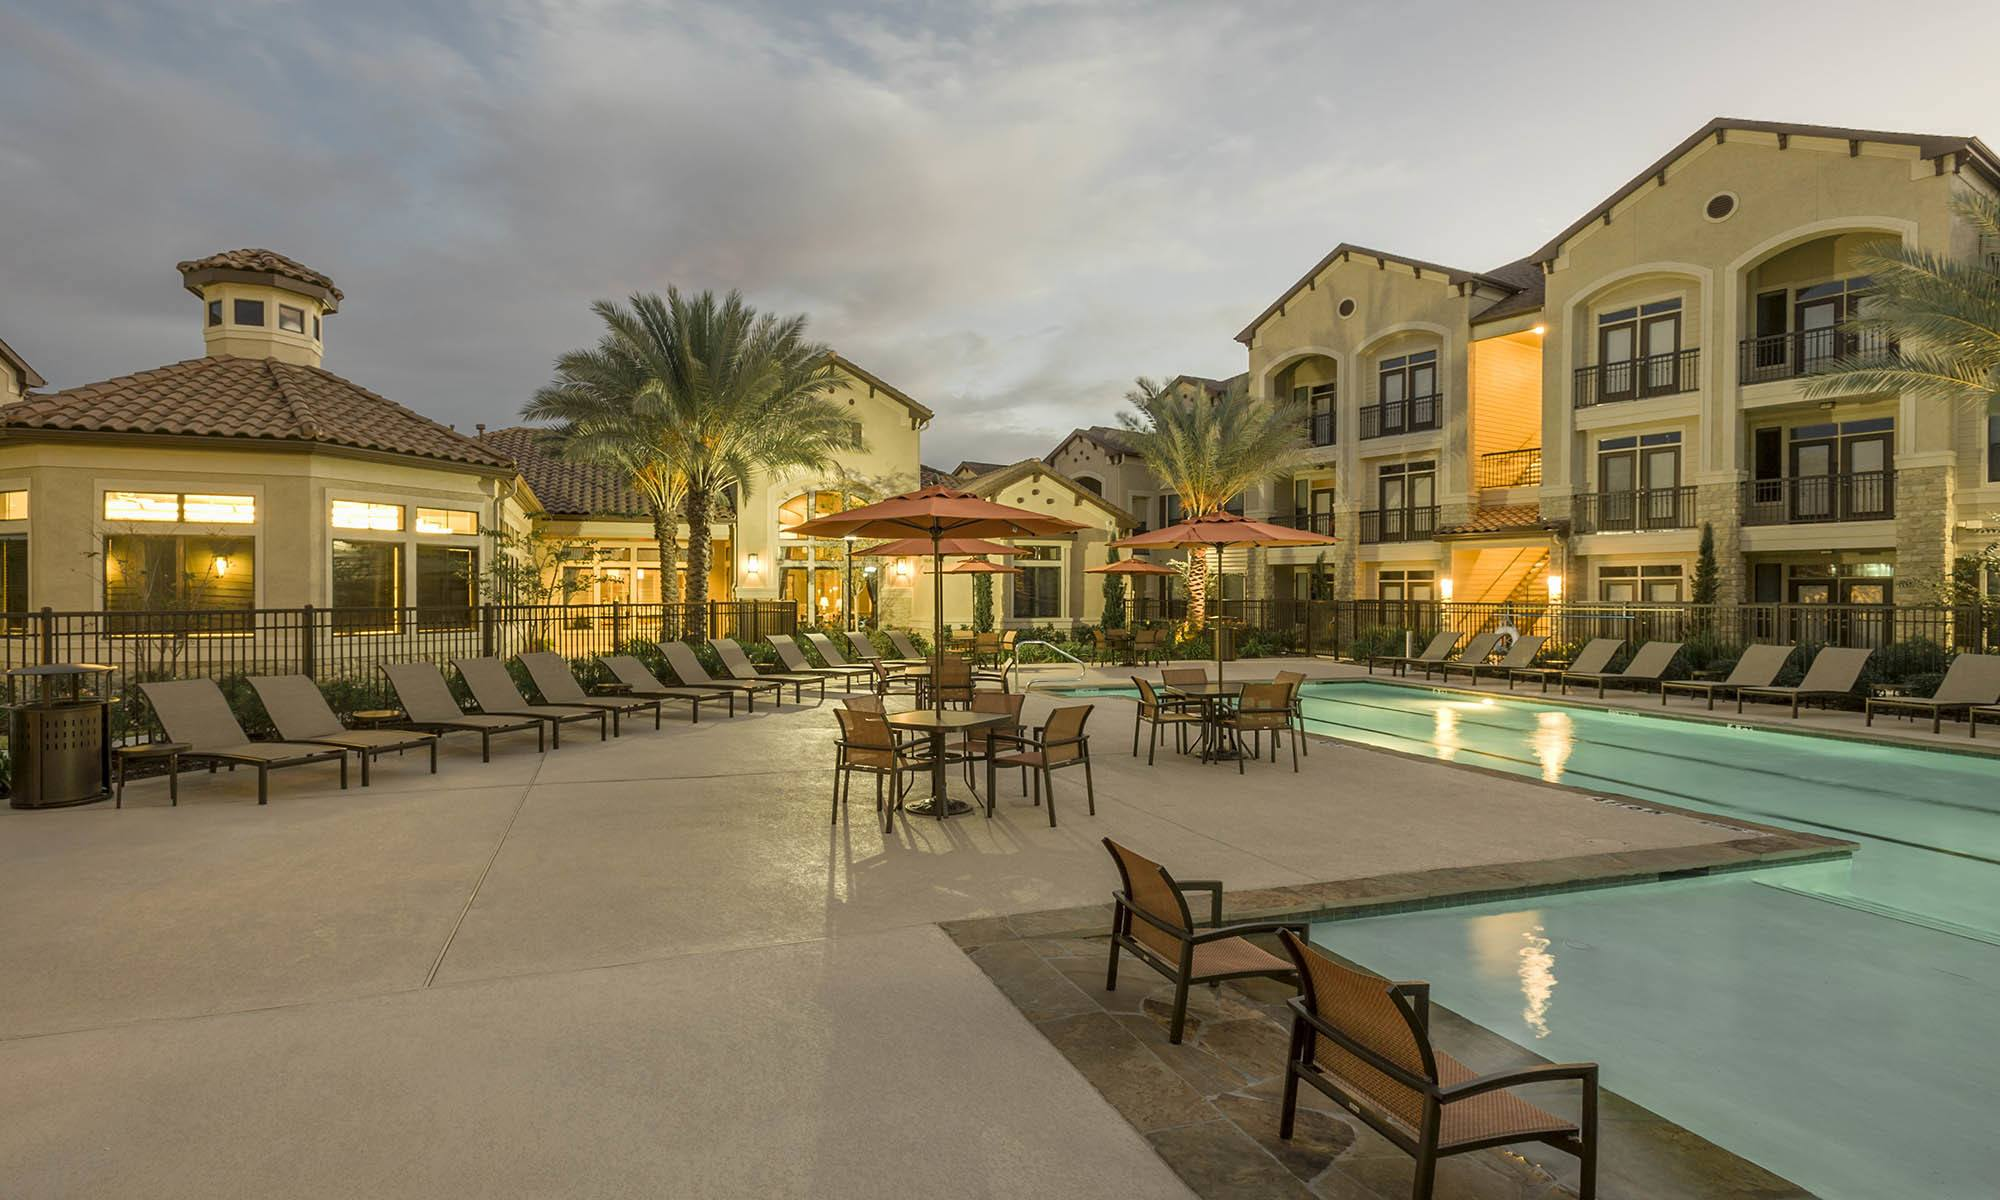 Houston apartments for rent has a safe pool area